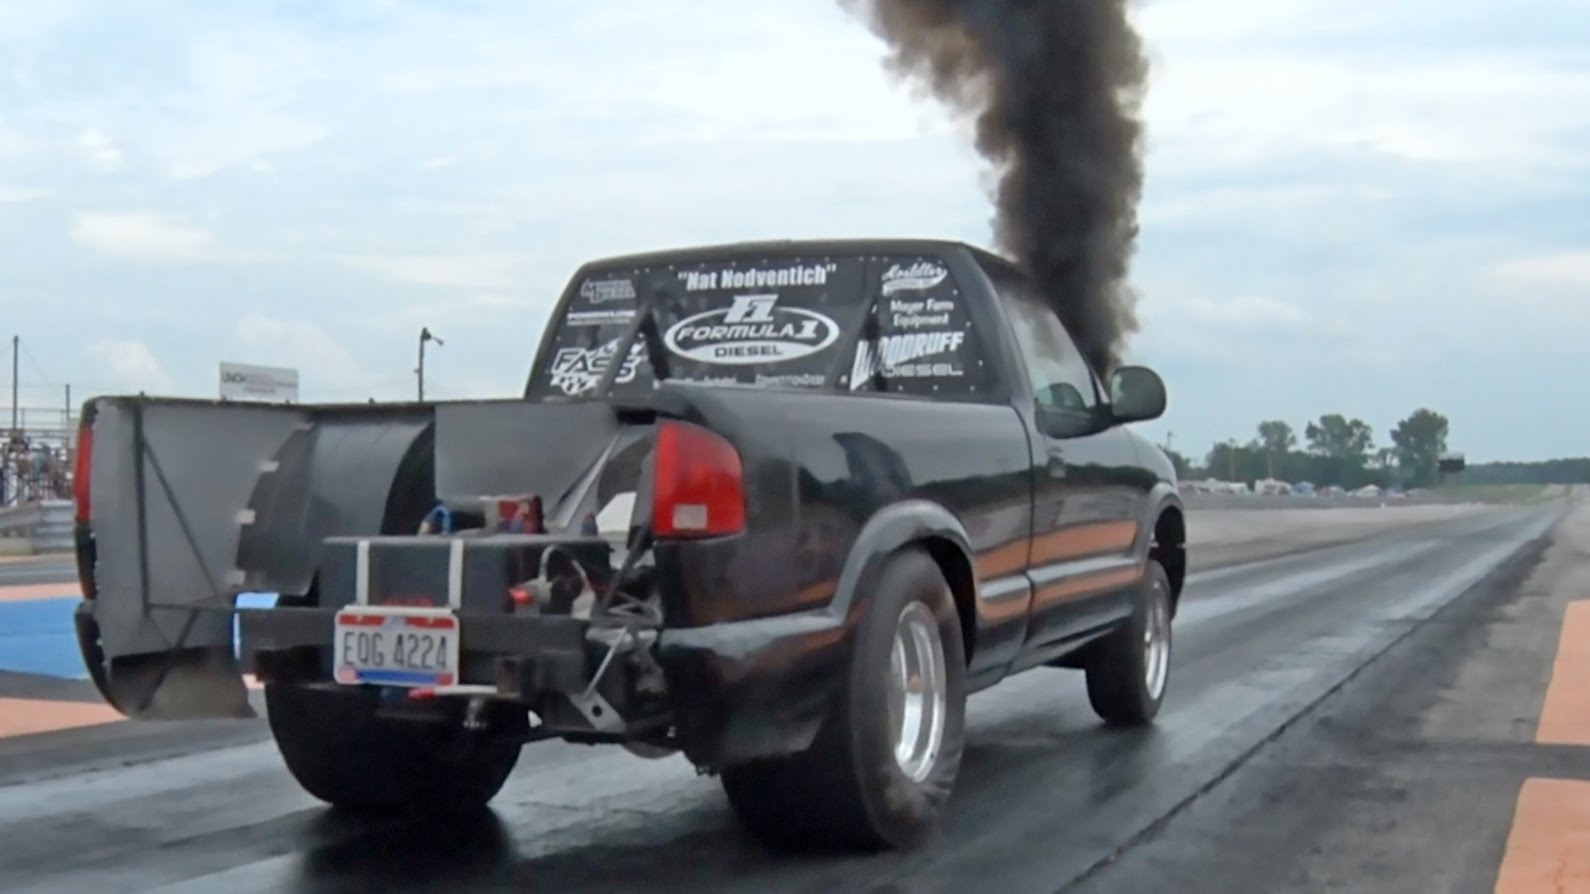 Diesel S10 Posts 10-Second Quarter-Mile | DragTimes.com Drag Racing ...